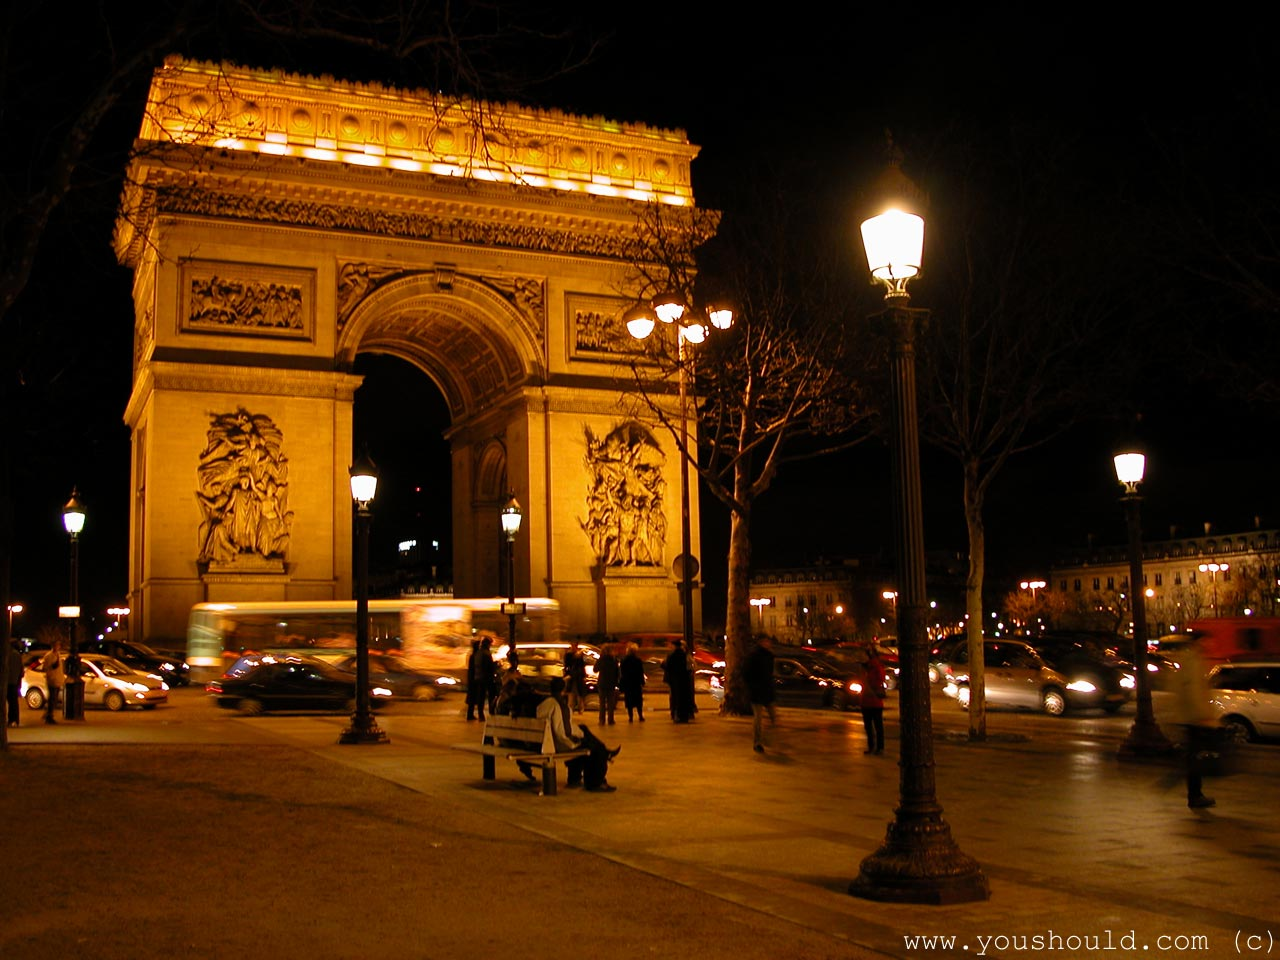 http://2.bp.blogspot.com/-wgin-PC2_E0/UQgN0tqdOAI/AAAAAAAAjwc/hT8M1I_AmRY/s1600/arc_de_triomphe_at_night_paris_france_wallpaper-normal.jpg